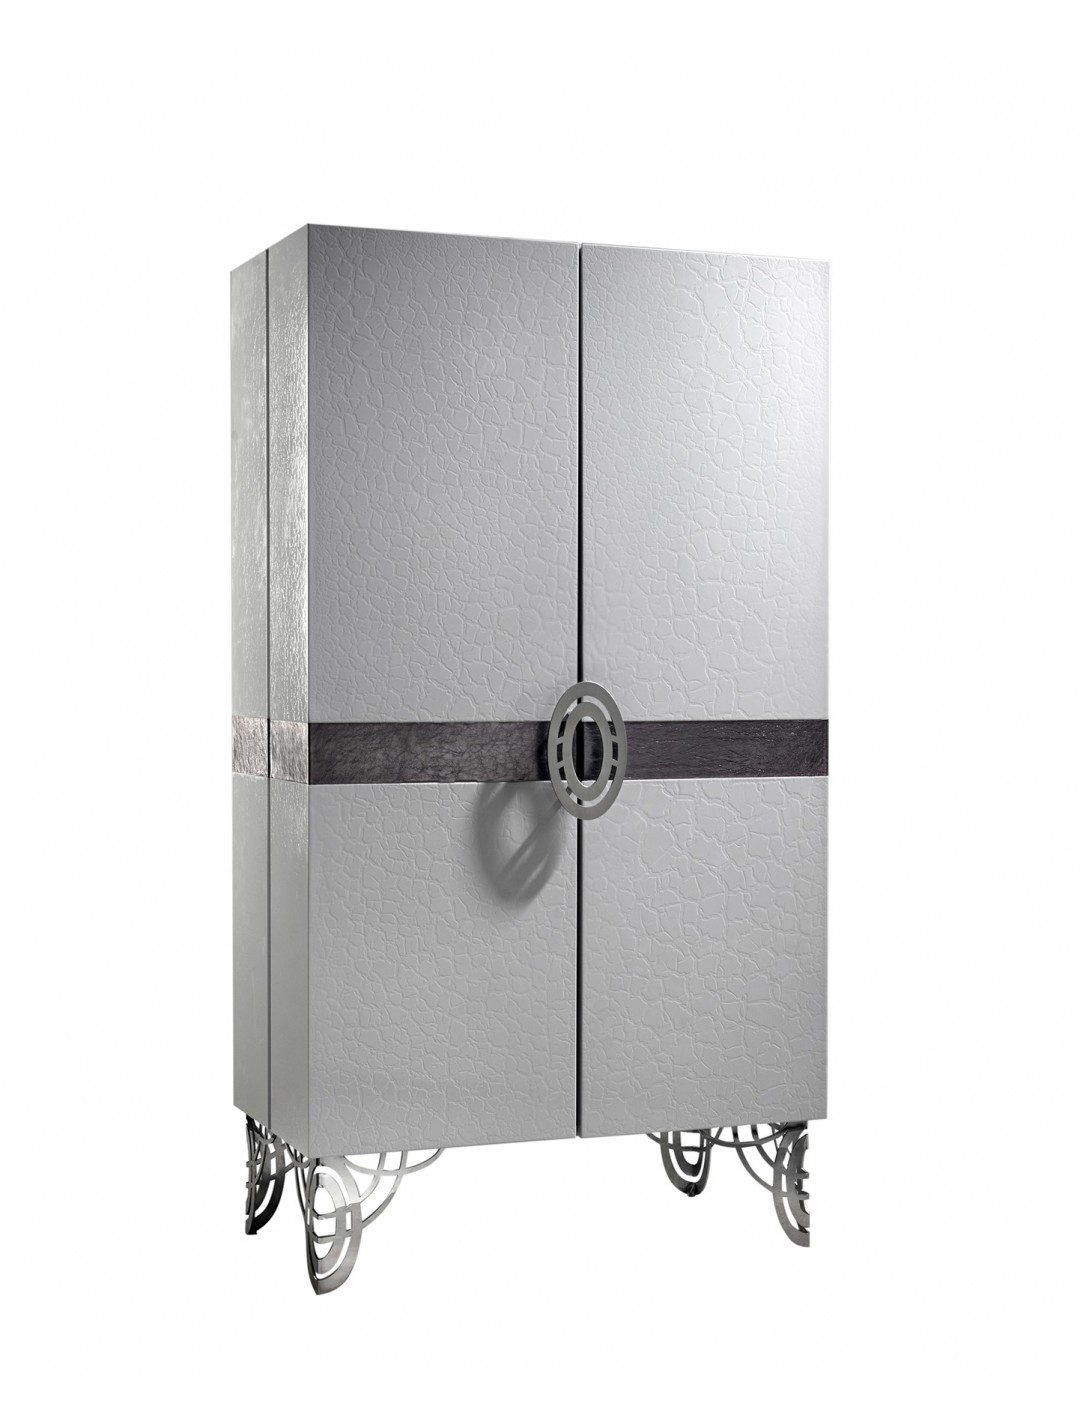 REGINA DEI GHIACCI CABINET, F9575 LUXY GREY LEATHER DETAIL, STAINLESS STEEL LEGS AND HARDWARE,